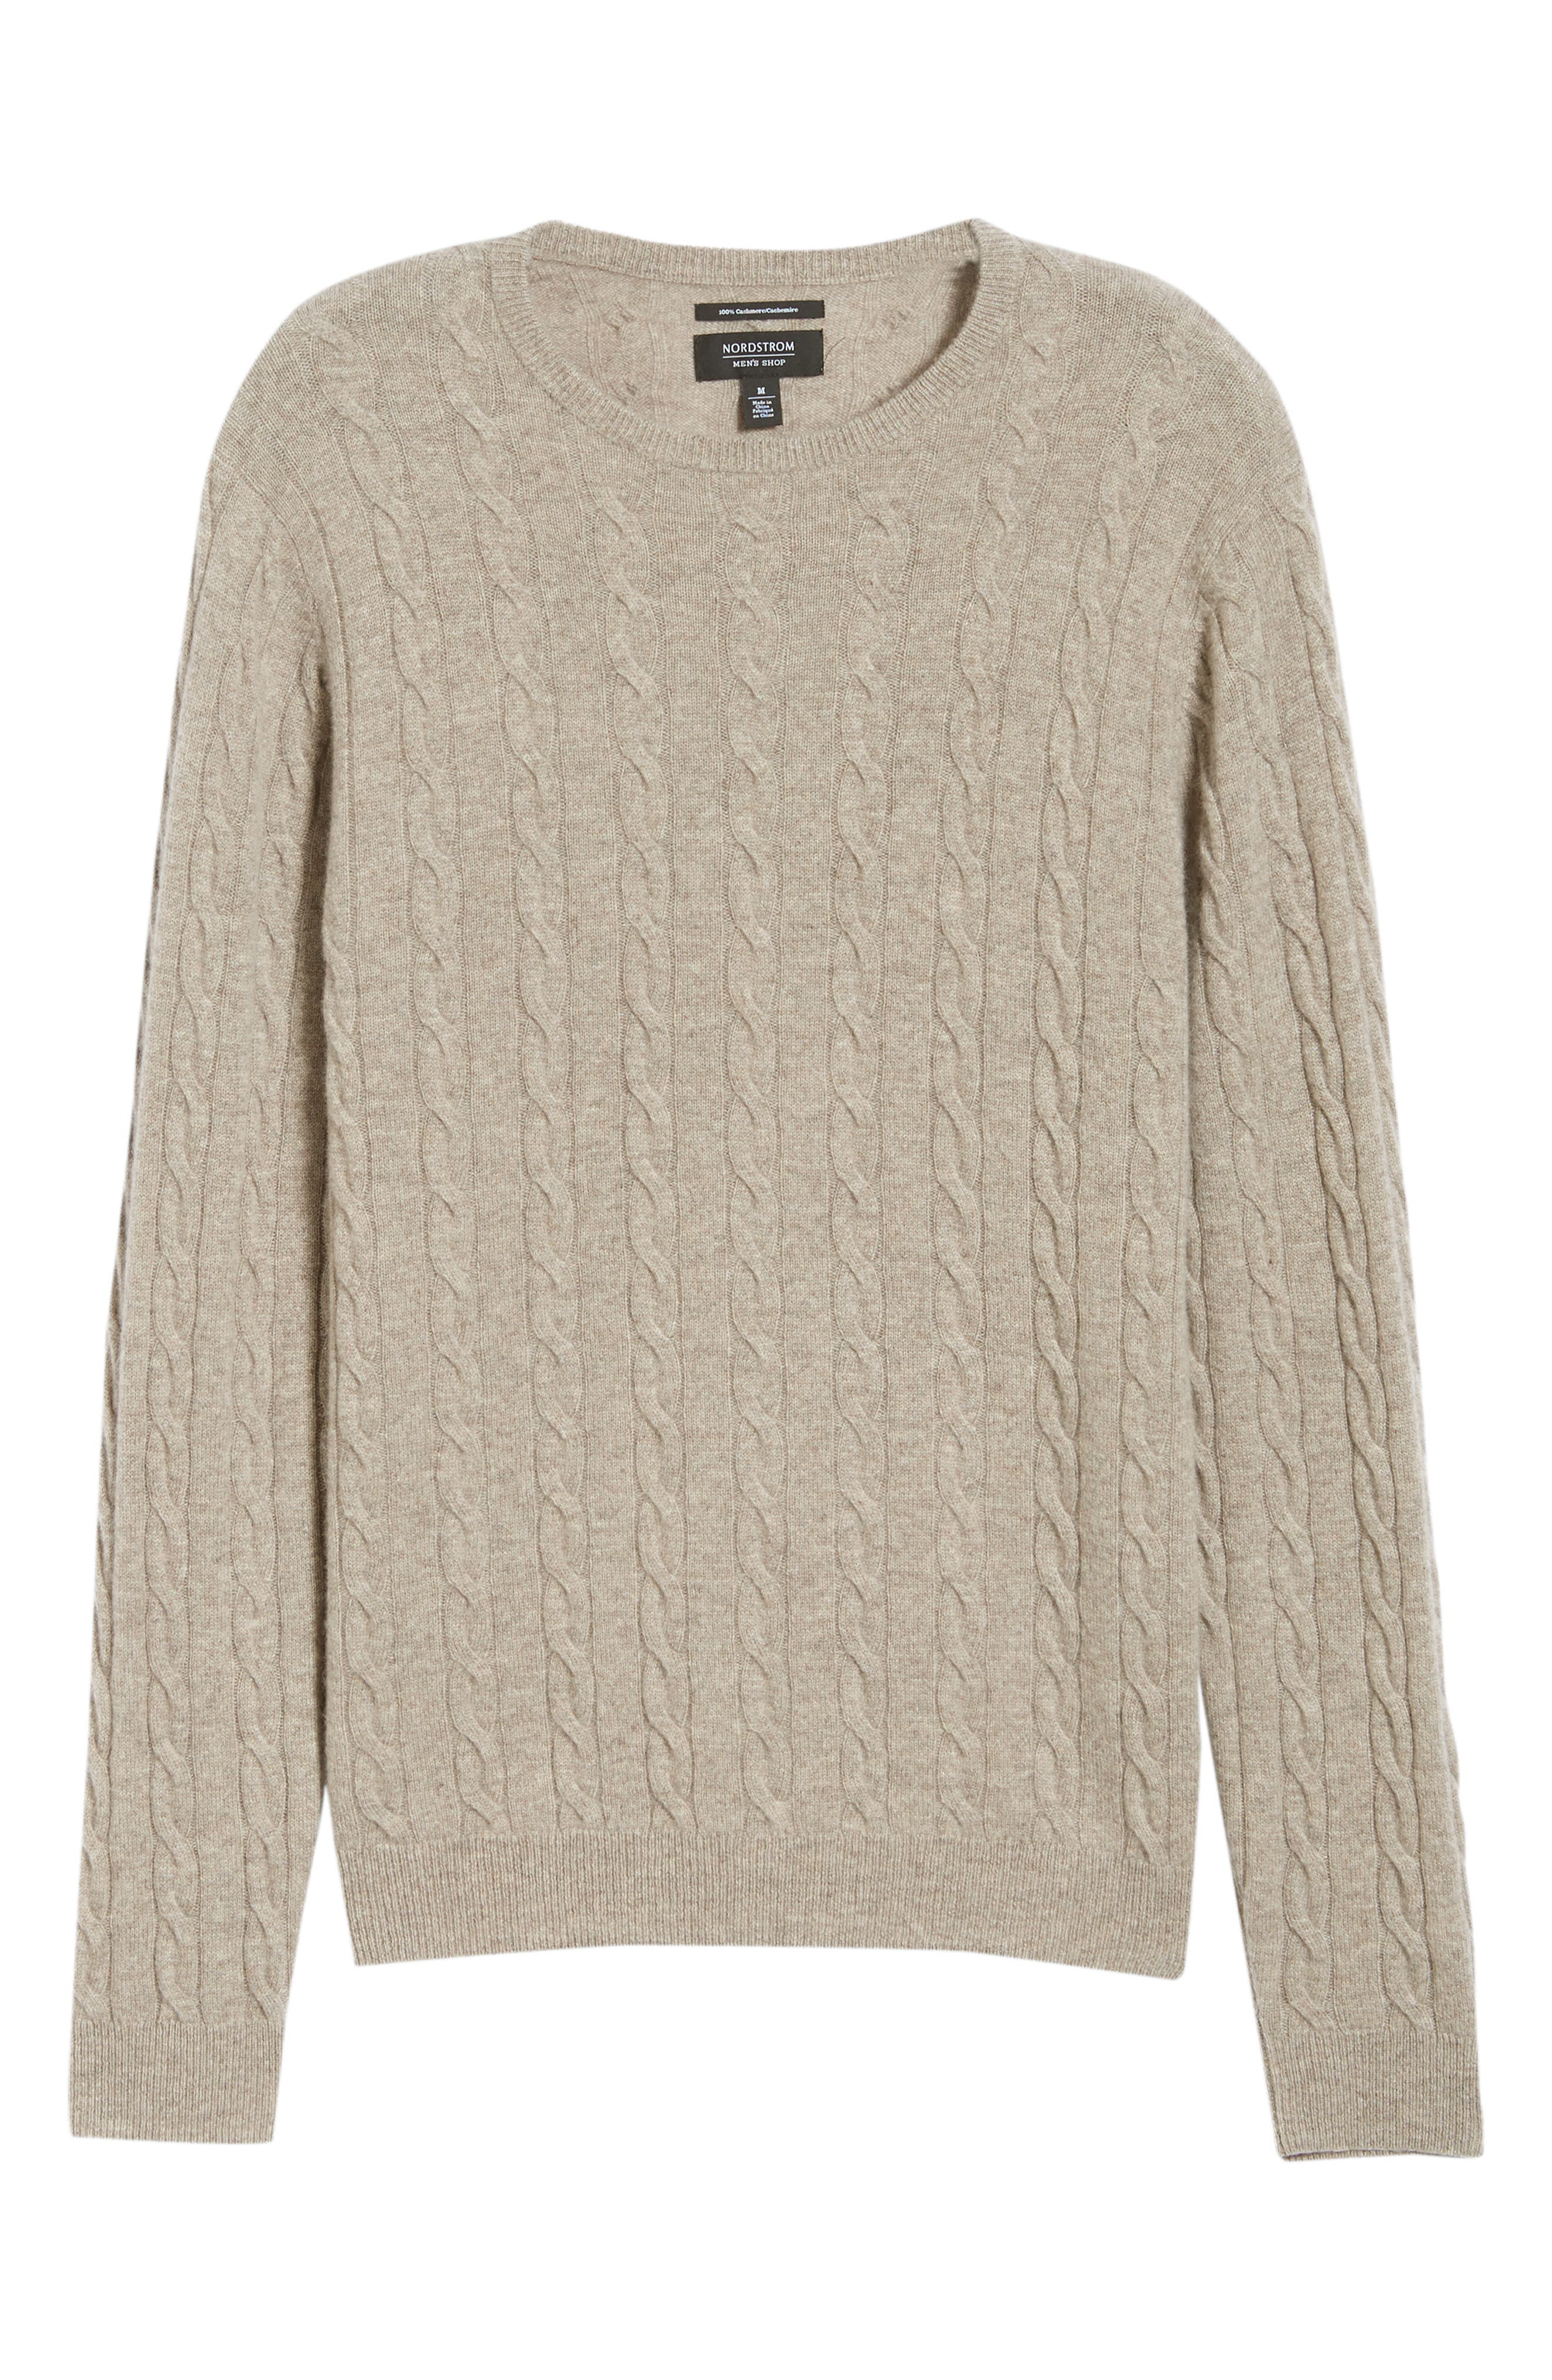 Cashmere Cable Knit Sweater,                             Alternate thumbnail 6, color,                             270